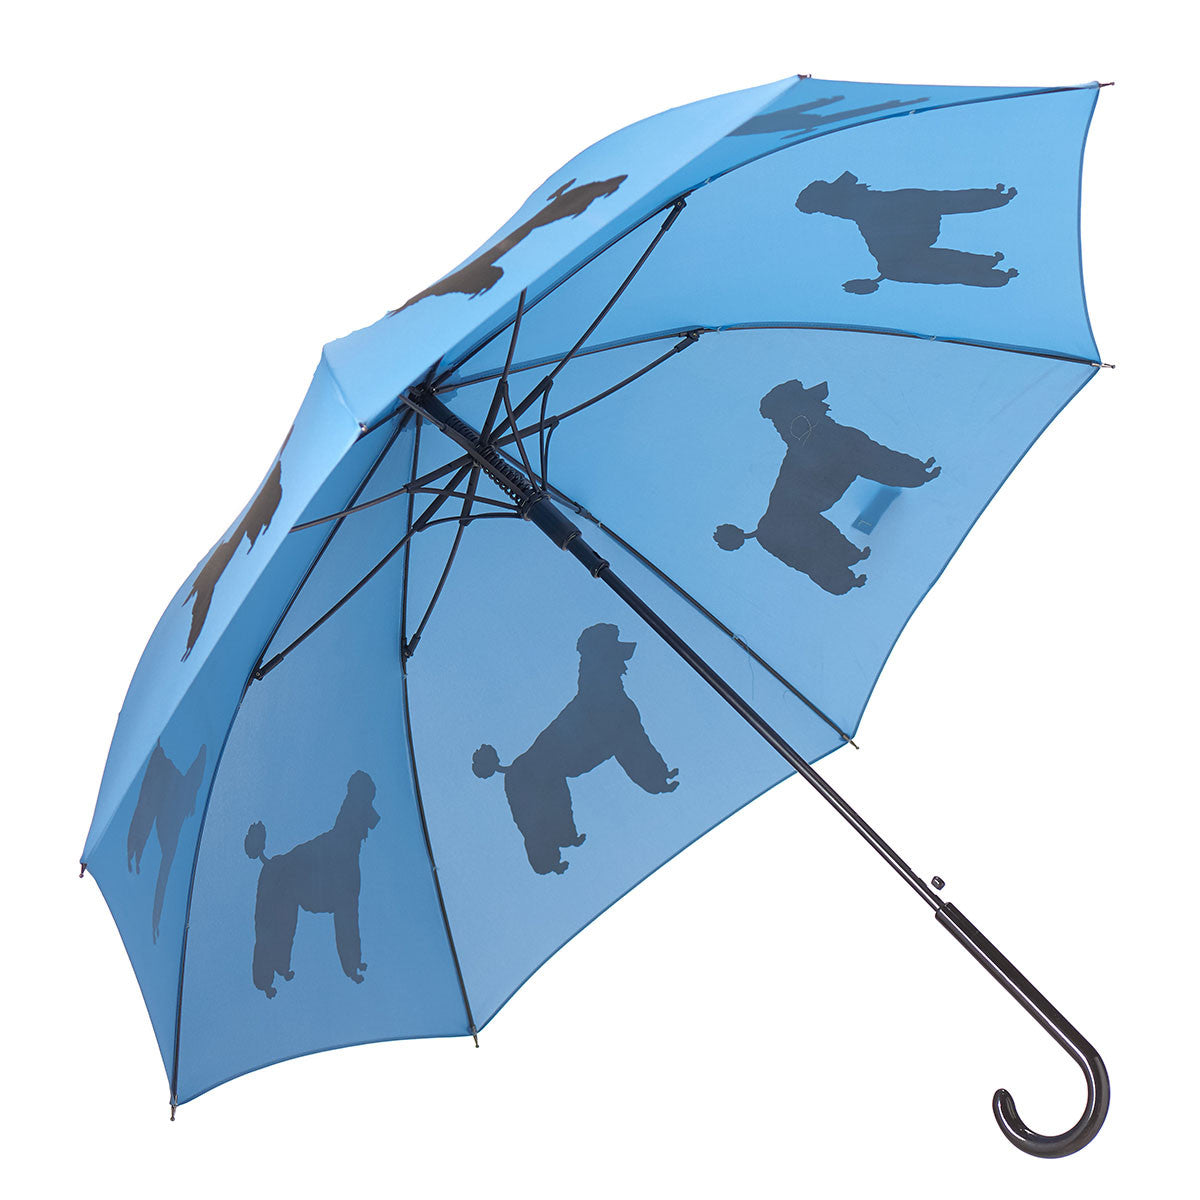 Poodle Stick Umbrella Auto Open Premium Quality Black on Blue